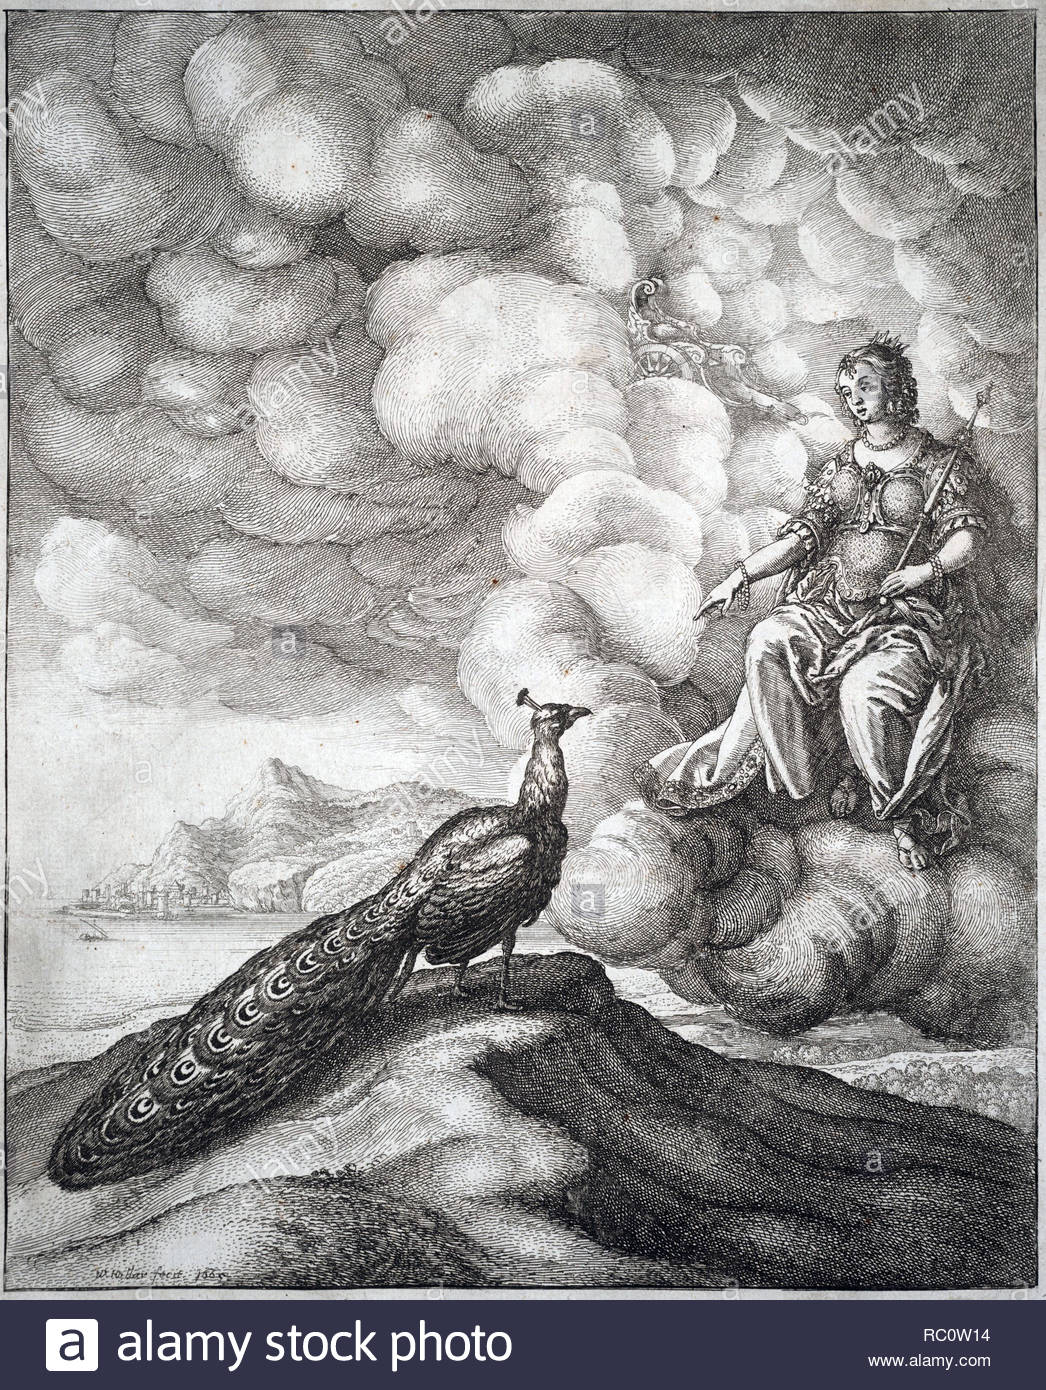 Juno was an ancient Roman goddess, the protector and special counselor of the state. A daughter of Saturn, she is the wife of Jupiter and the mother of Mars, Vulcan, Bellona and Juventas, her sacred animal was the peacock. Etching by Bohemian etcher Wenceslaus Hollar from 1600s - Stock Image